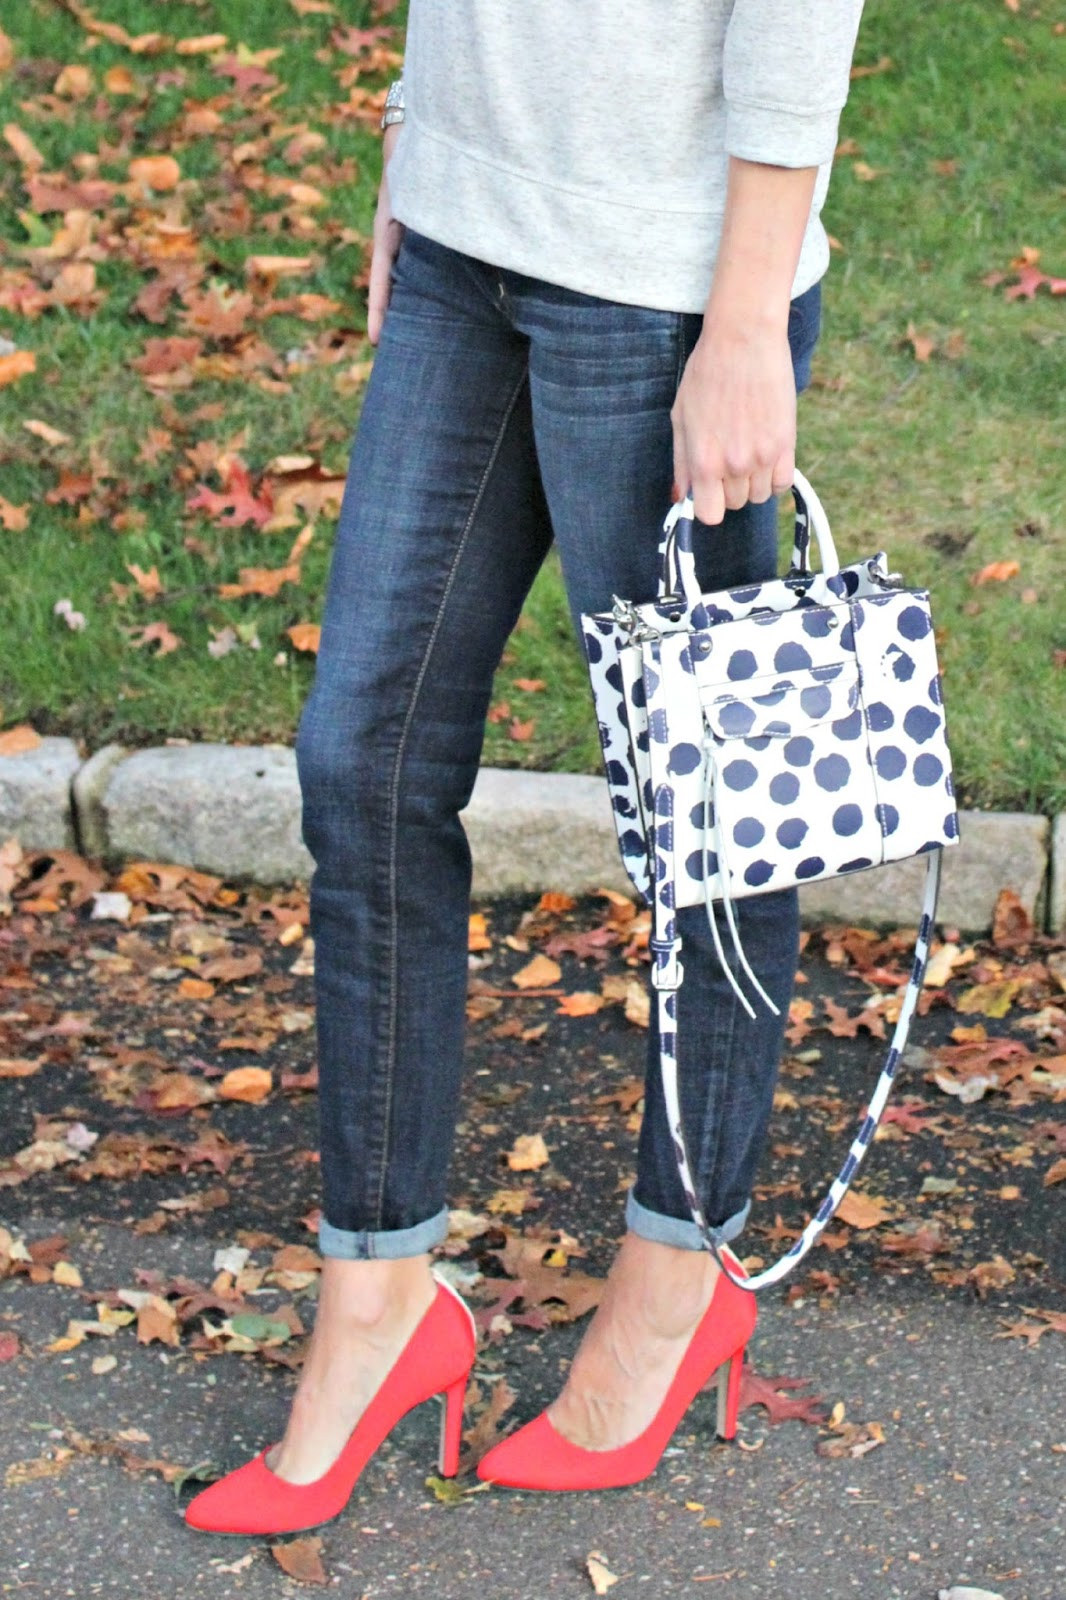 sjp lady pumps